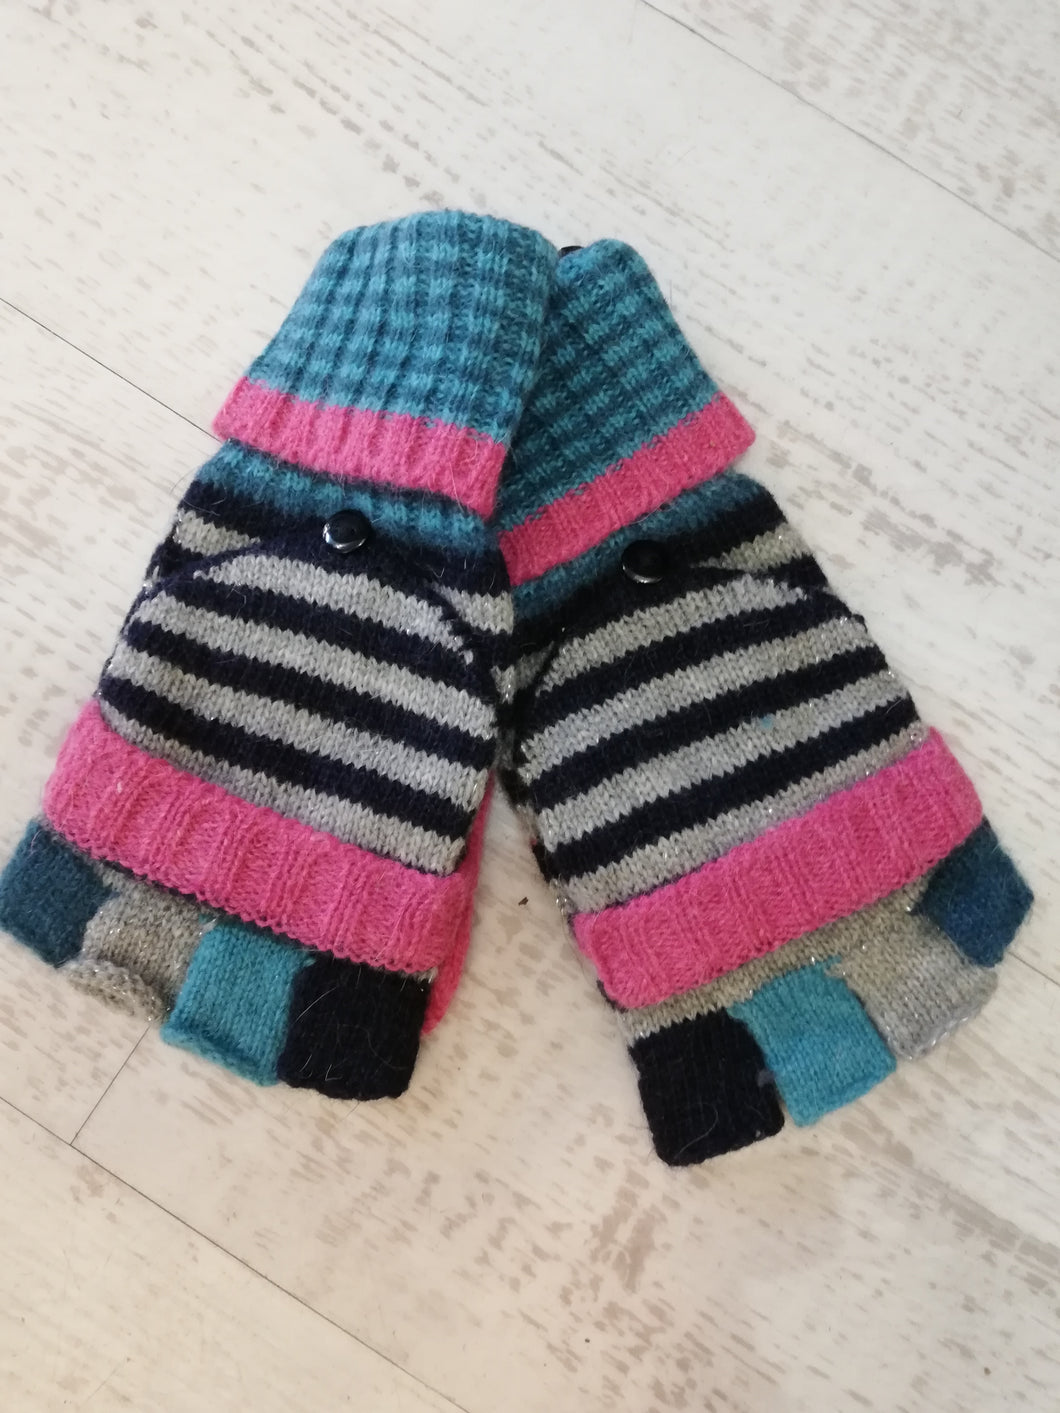 Mitten/Gloves with finger cover